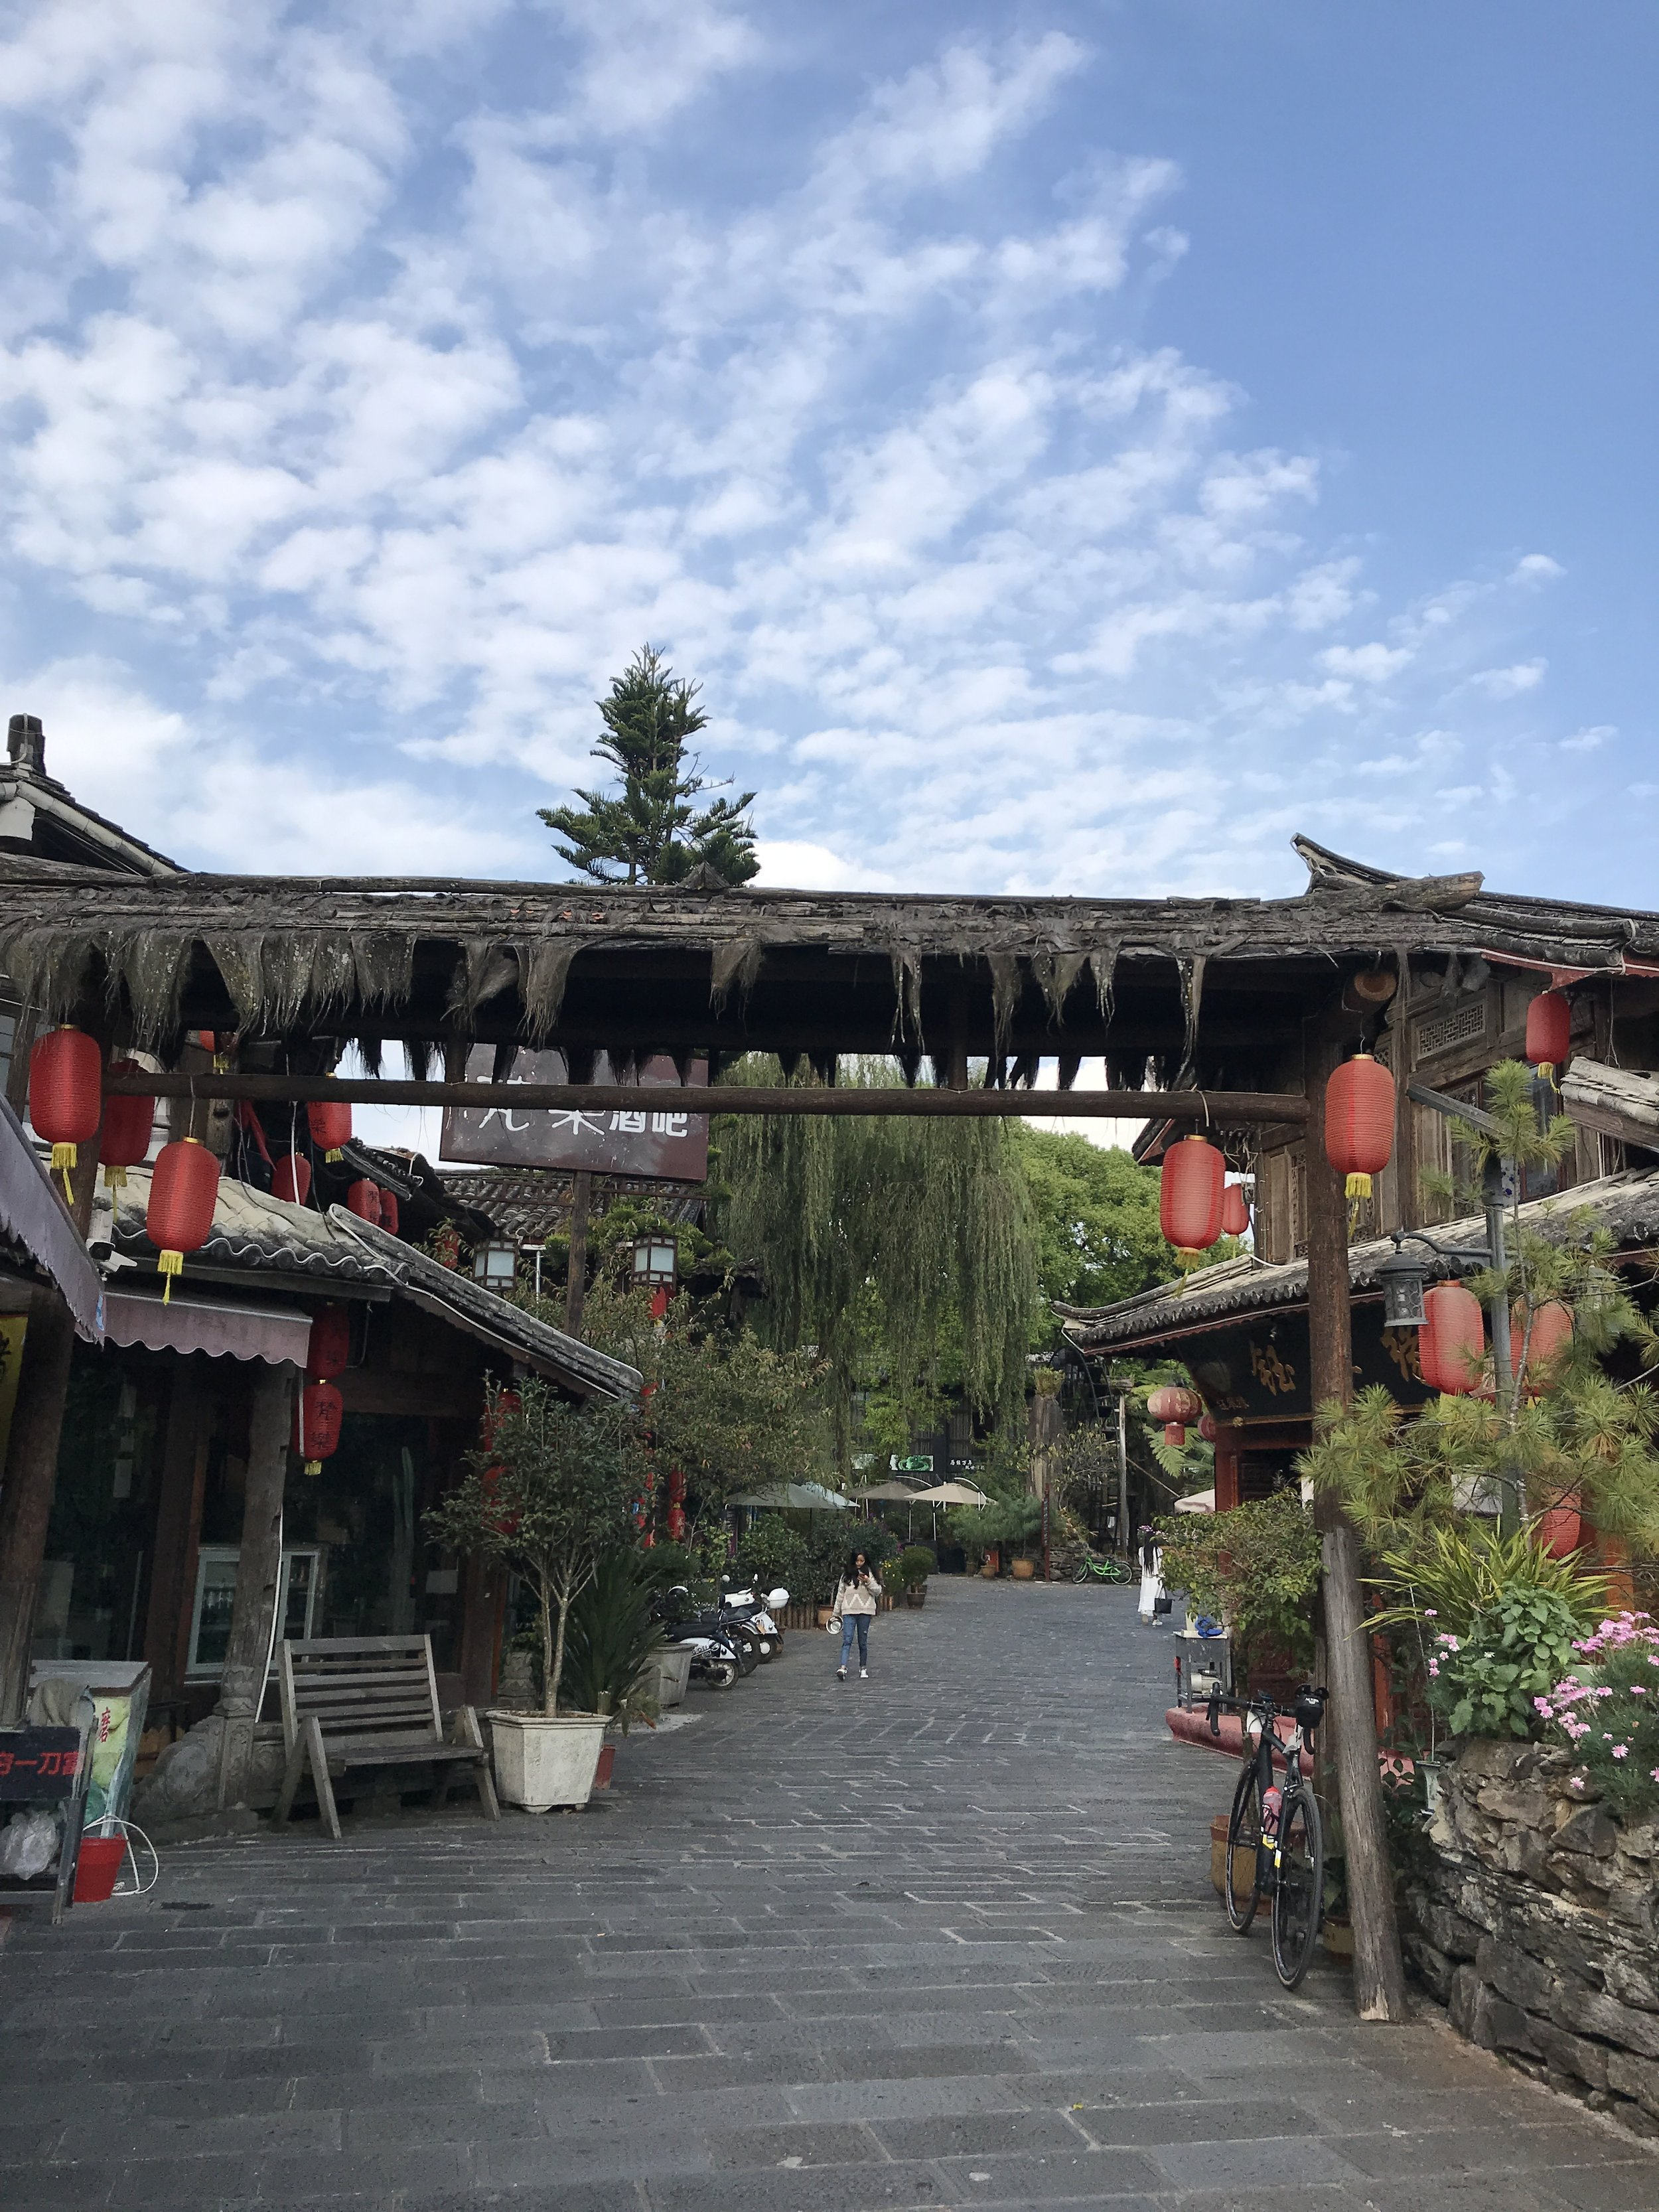 Part of the Old Town of Teng Chong.